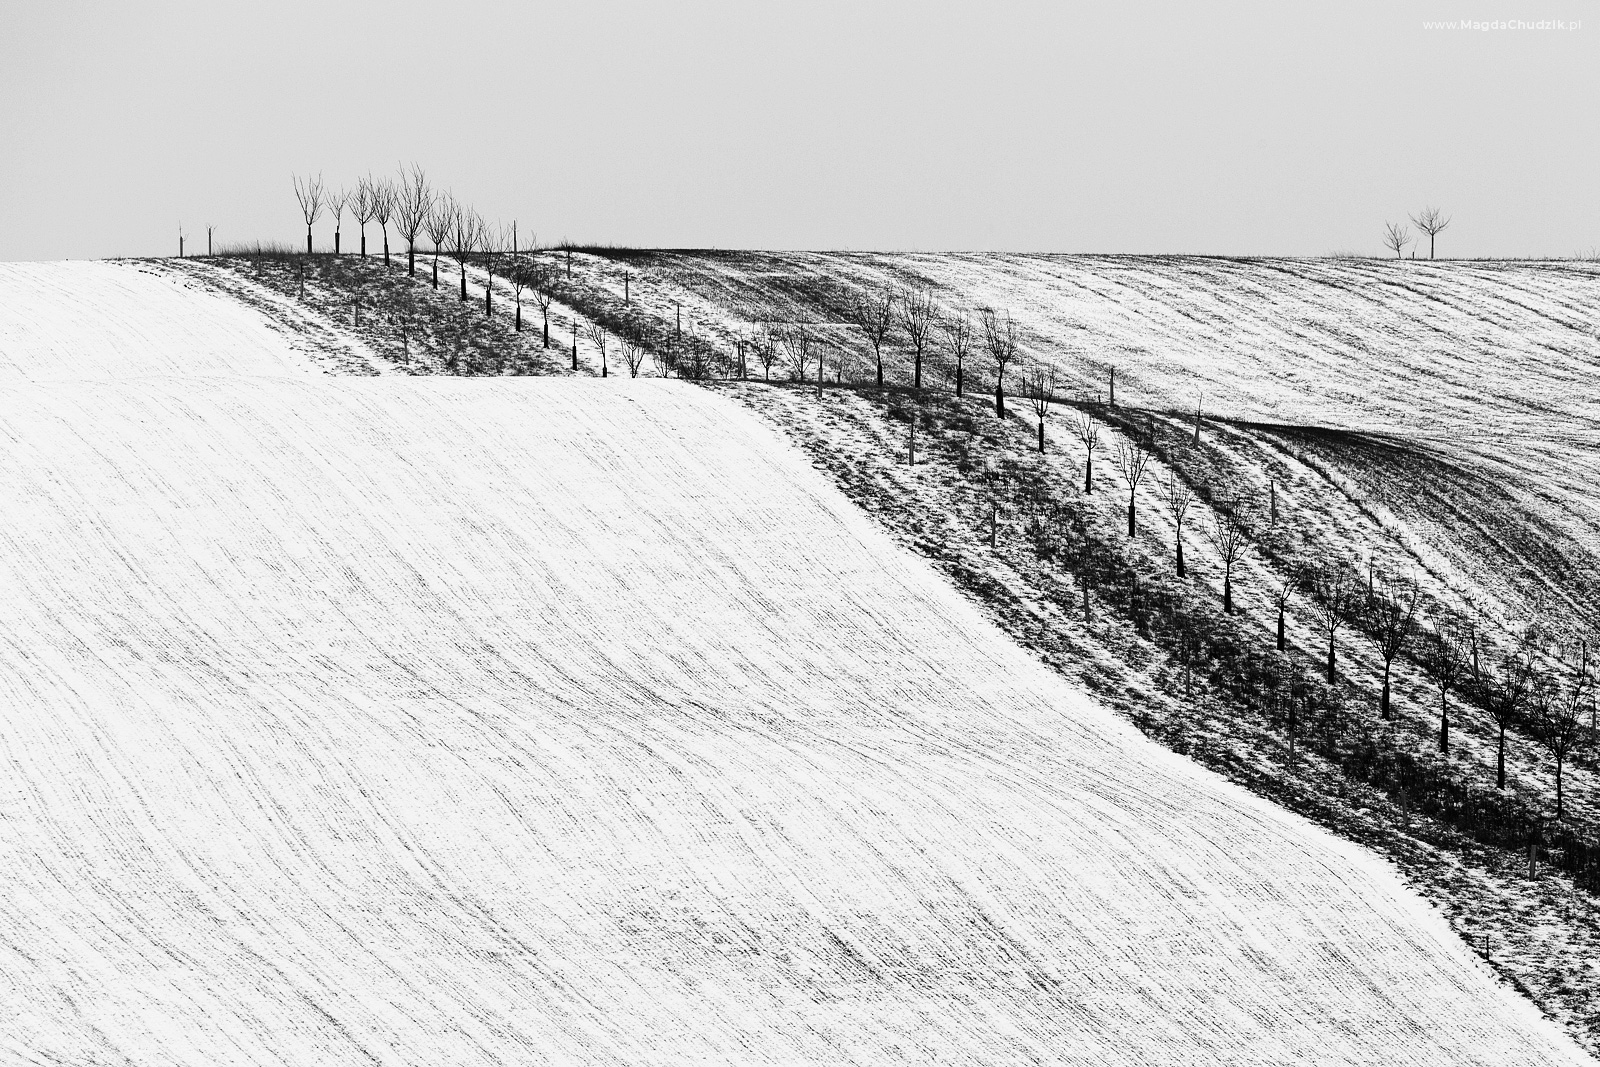 magda-chudzik-black-and-white-landscape-photography-33